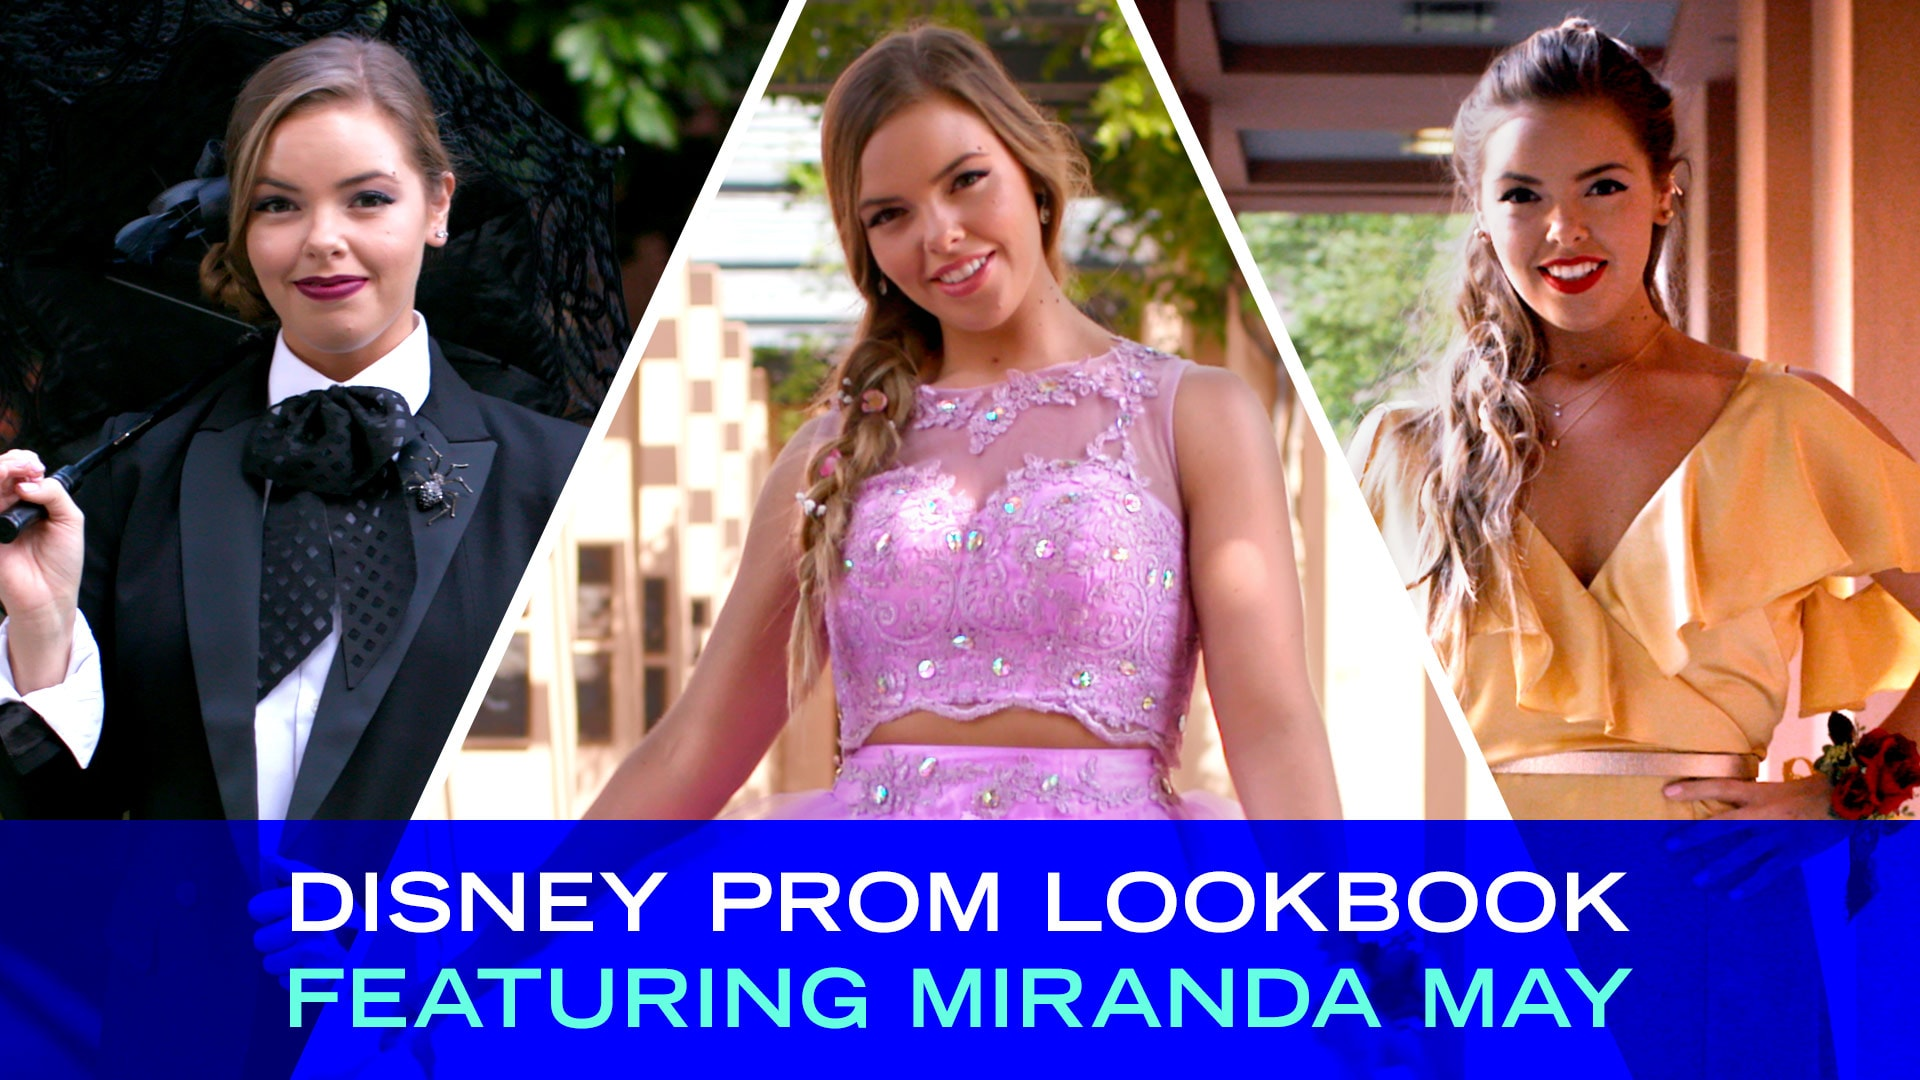 Disney Prom Lookbook Featuring Miranda May